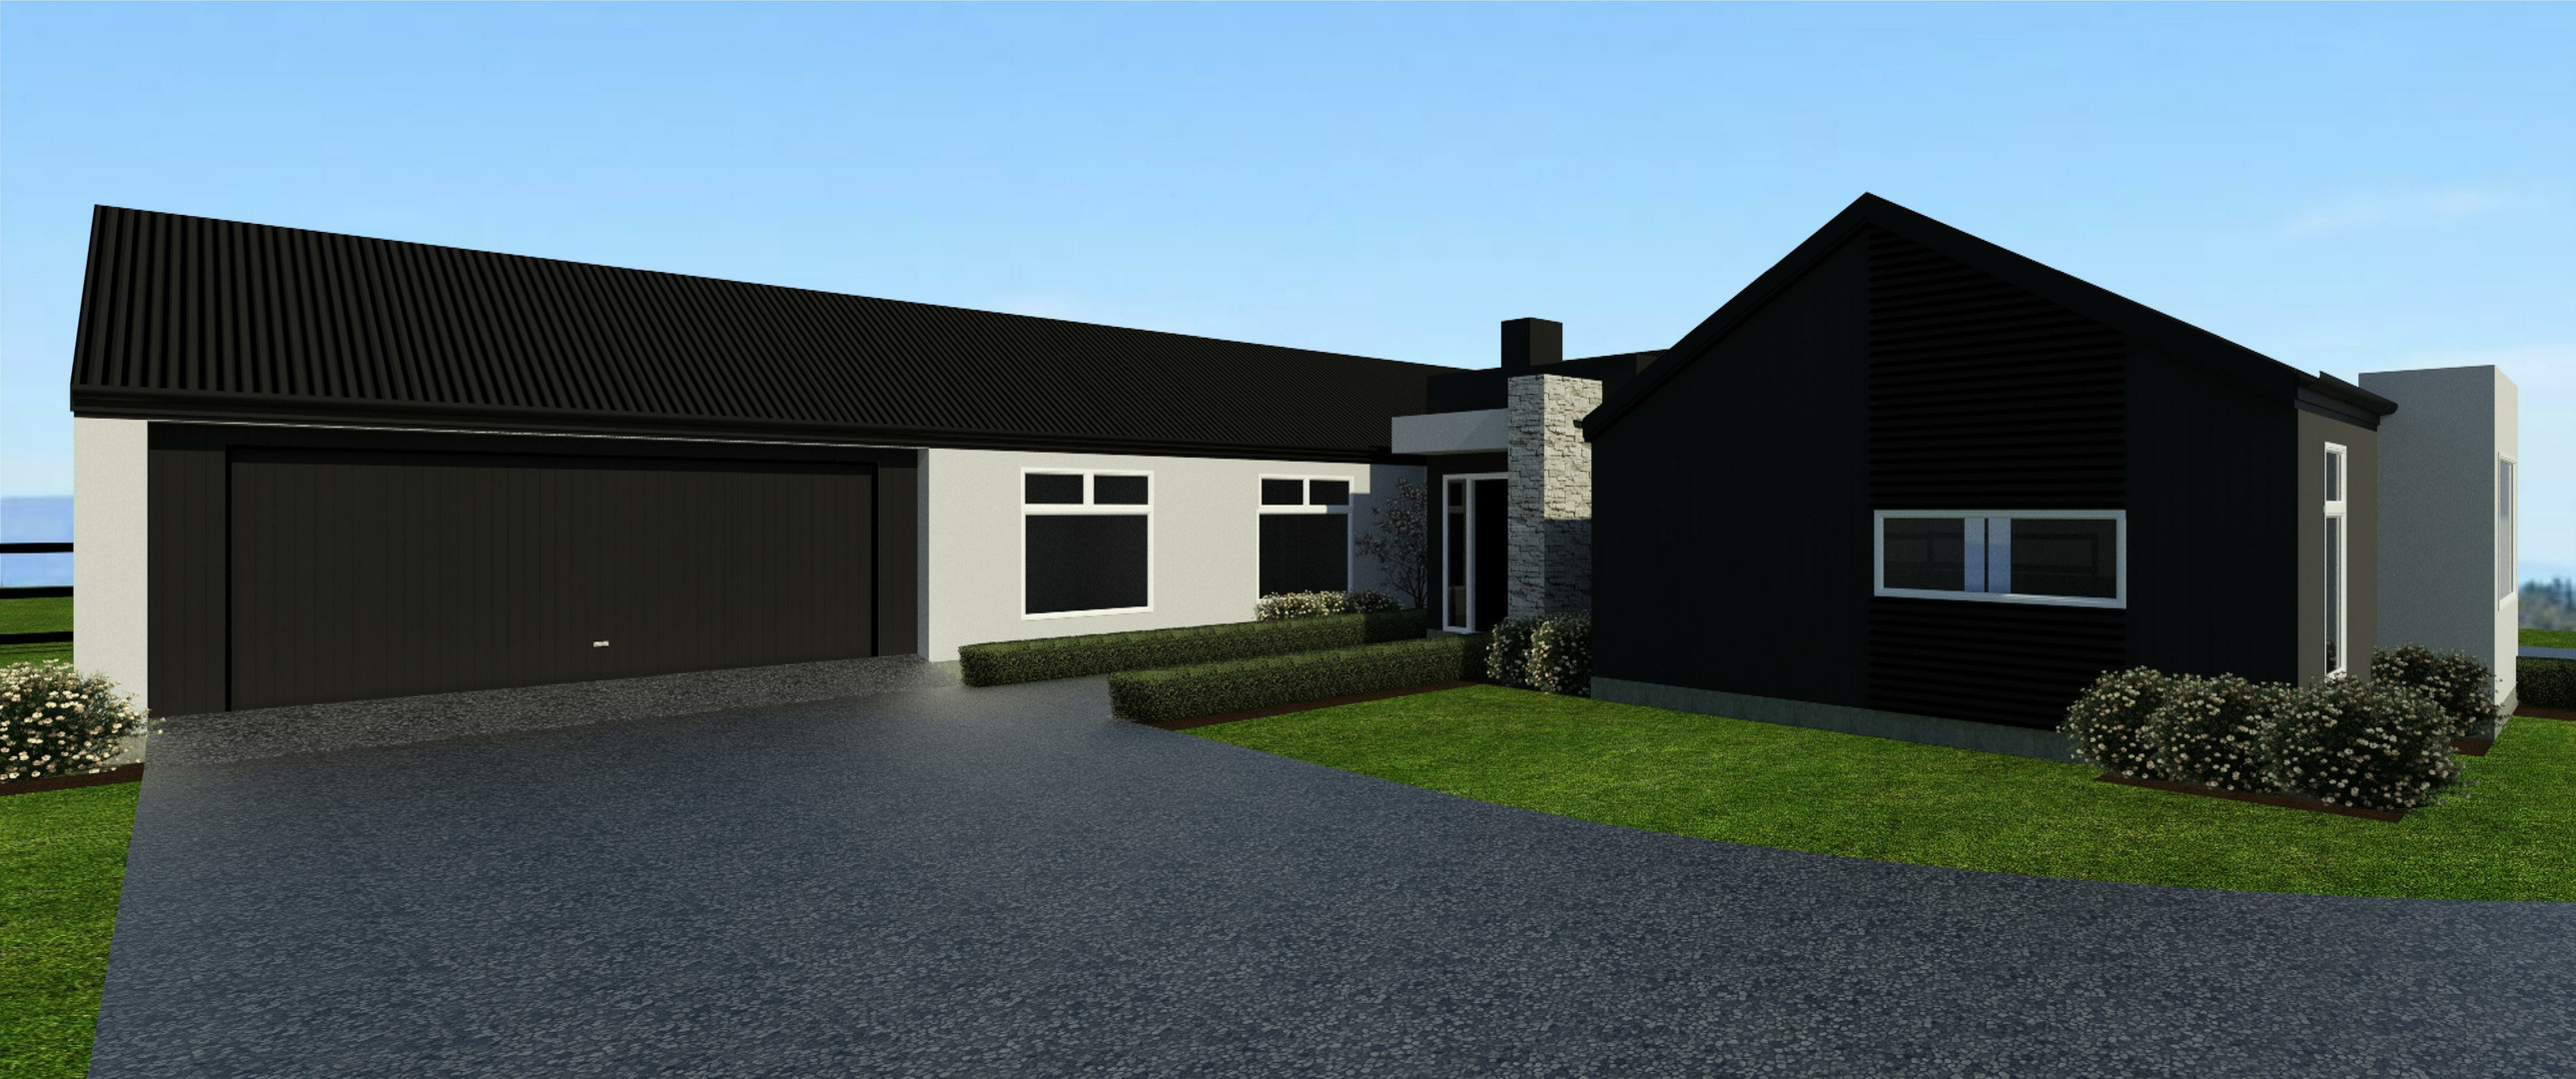 Ranfurly Road - 3D view 1.jpg